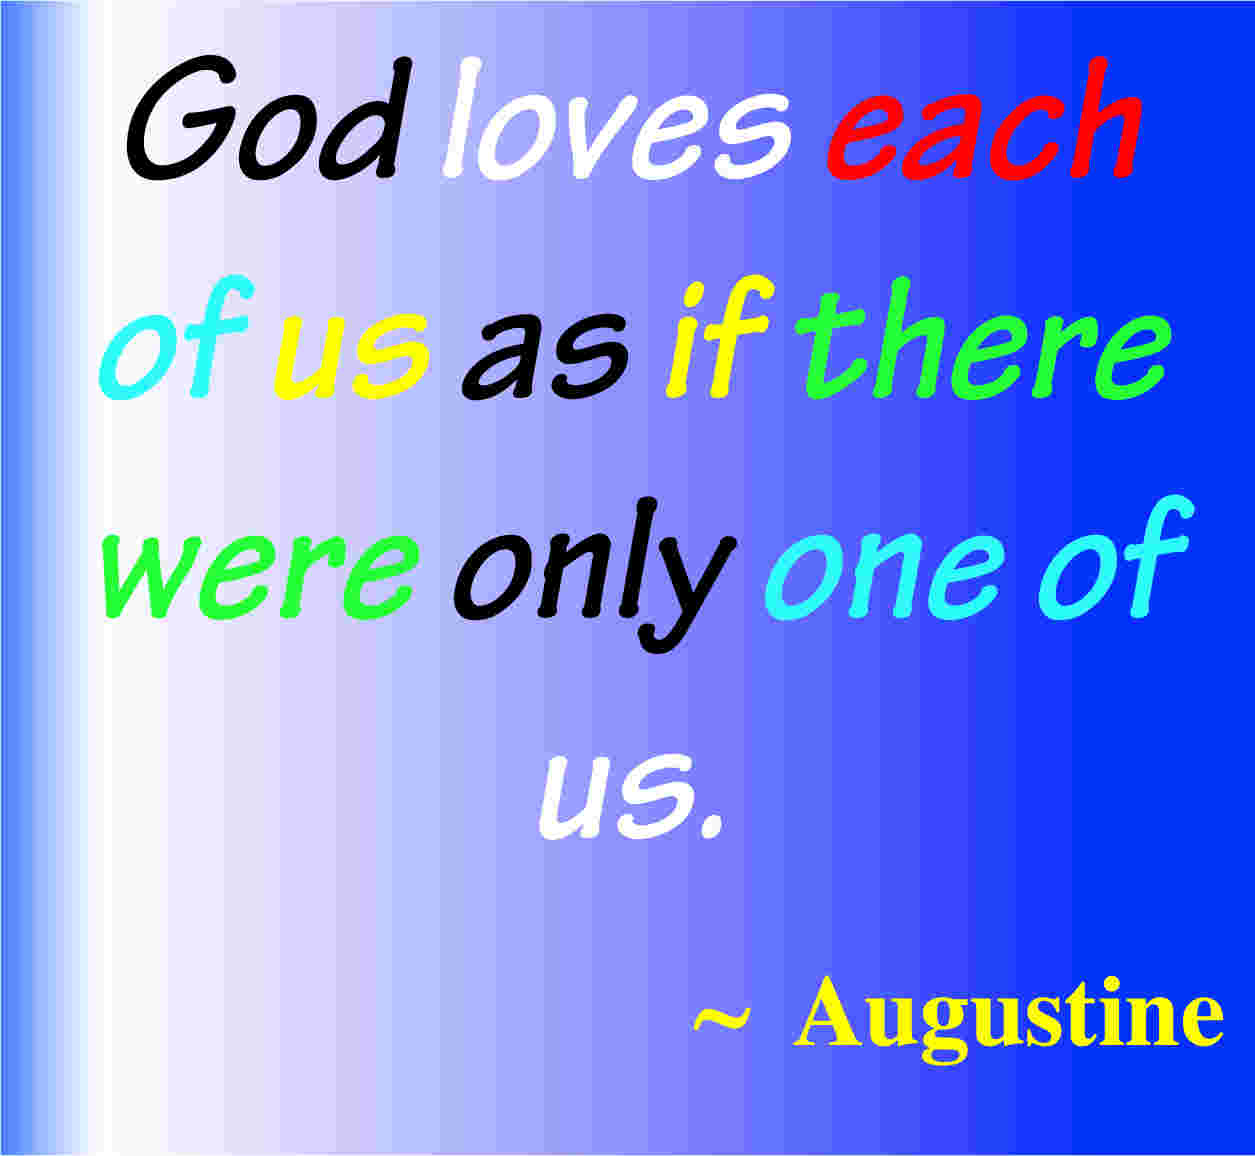 Love Bible Quotes Simple 20 Inspirational Bible Verses About God's Love